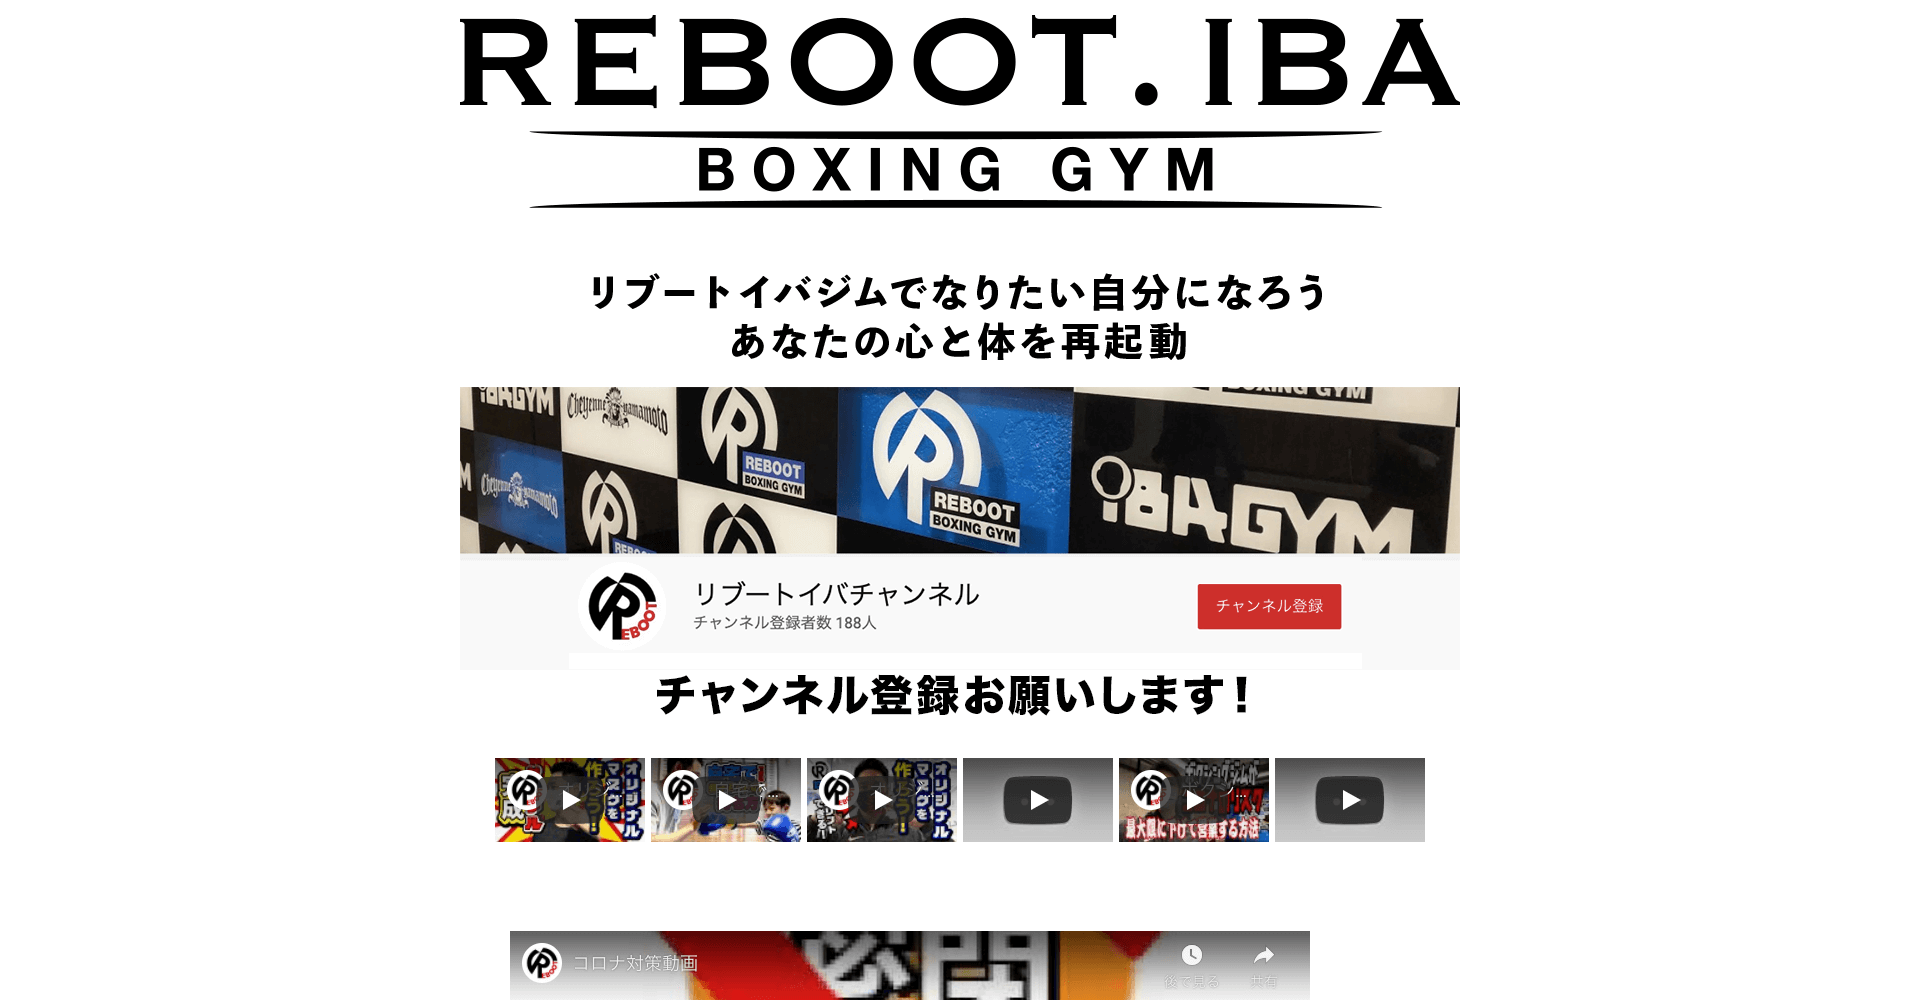 REBOOT BOXING GYM